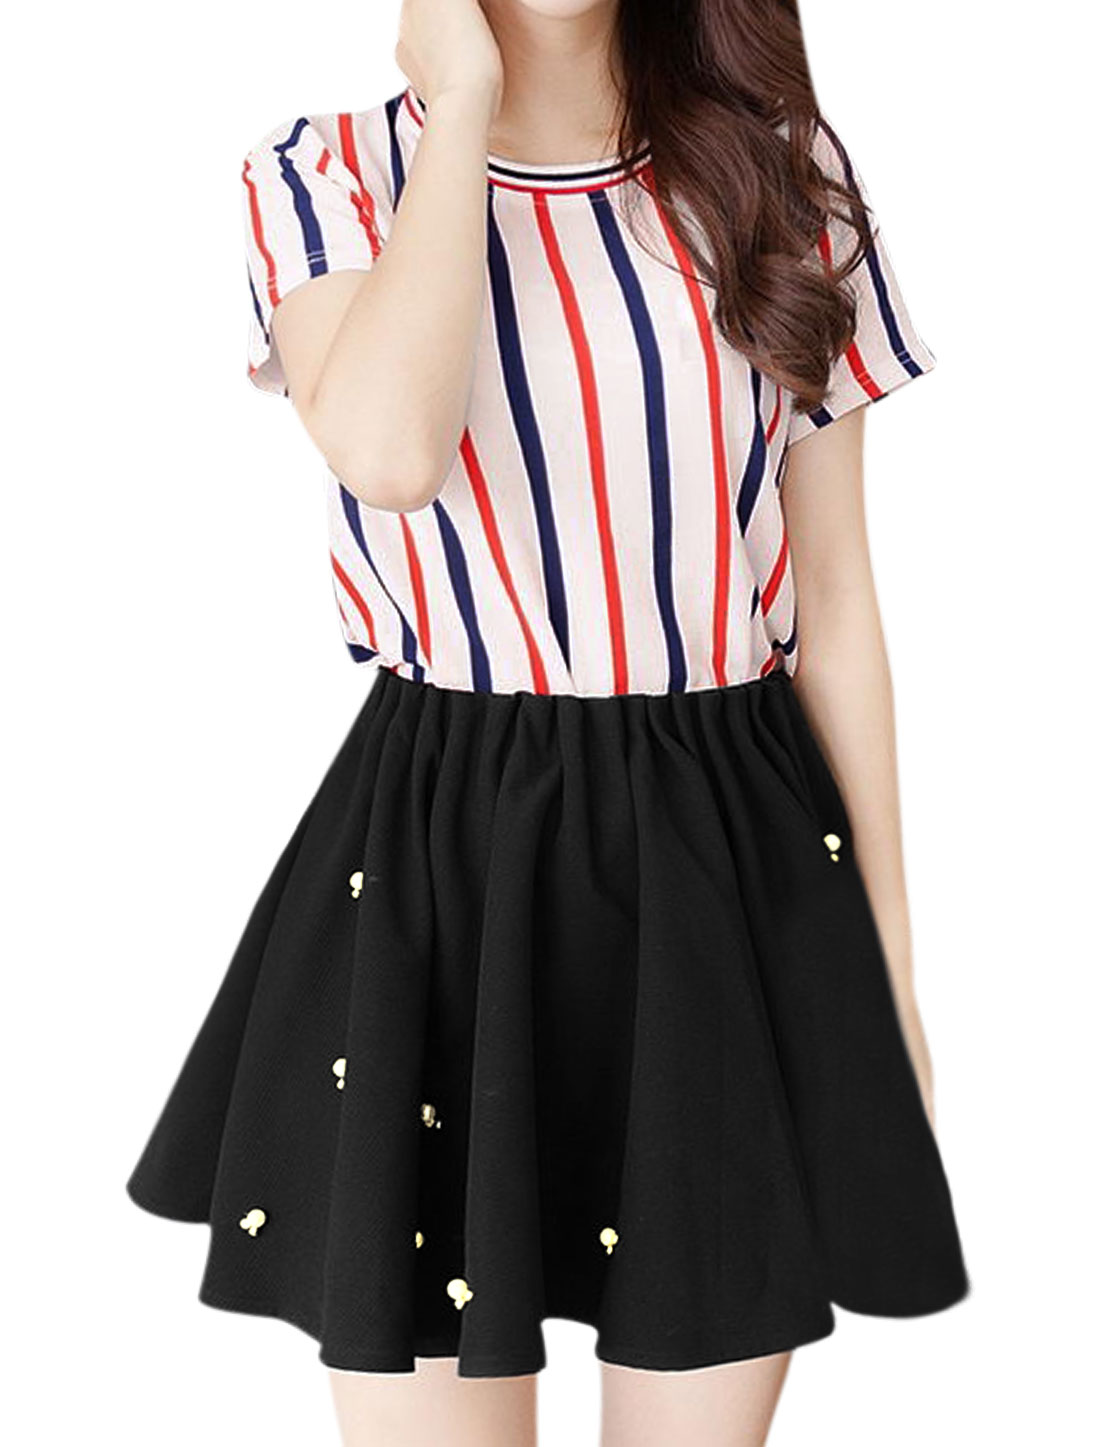 Woman Stripes Top w Beads Decor Pleated Skorts Sets White Black S